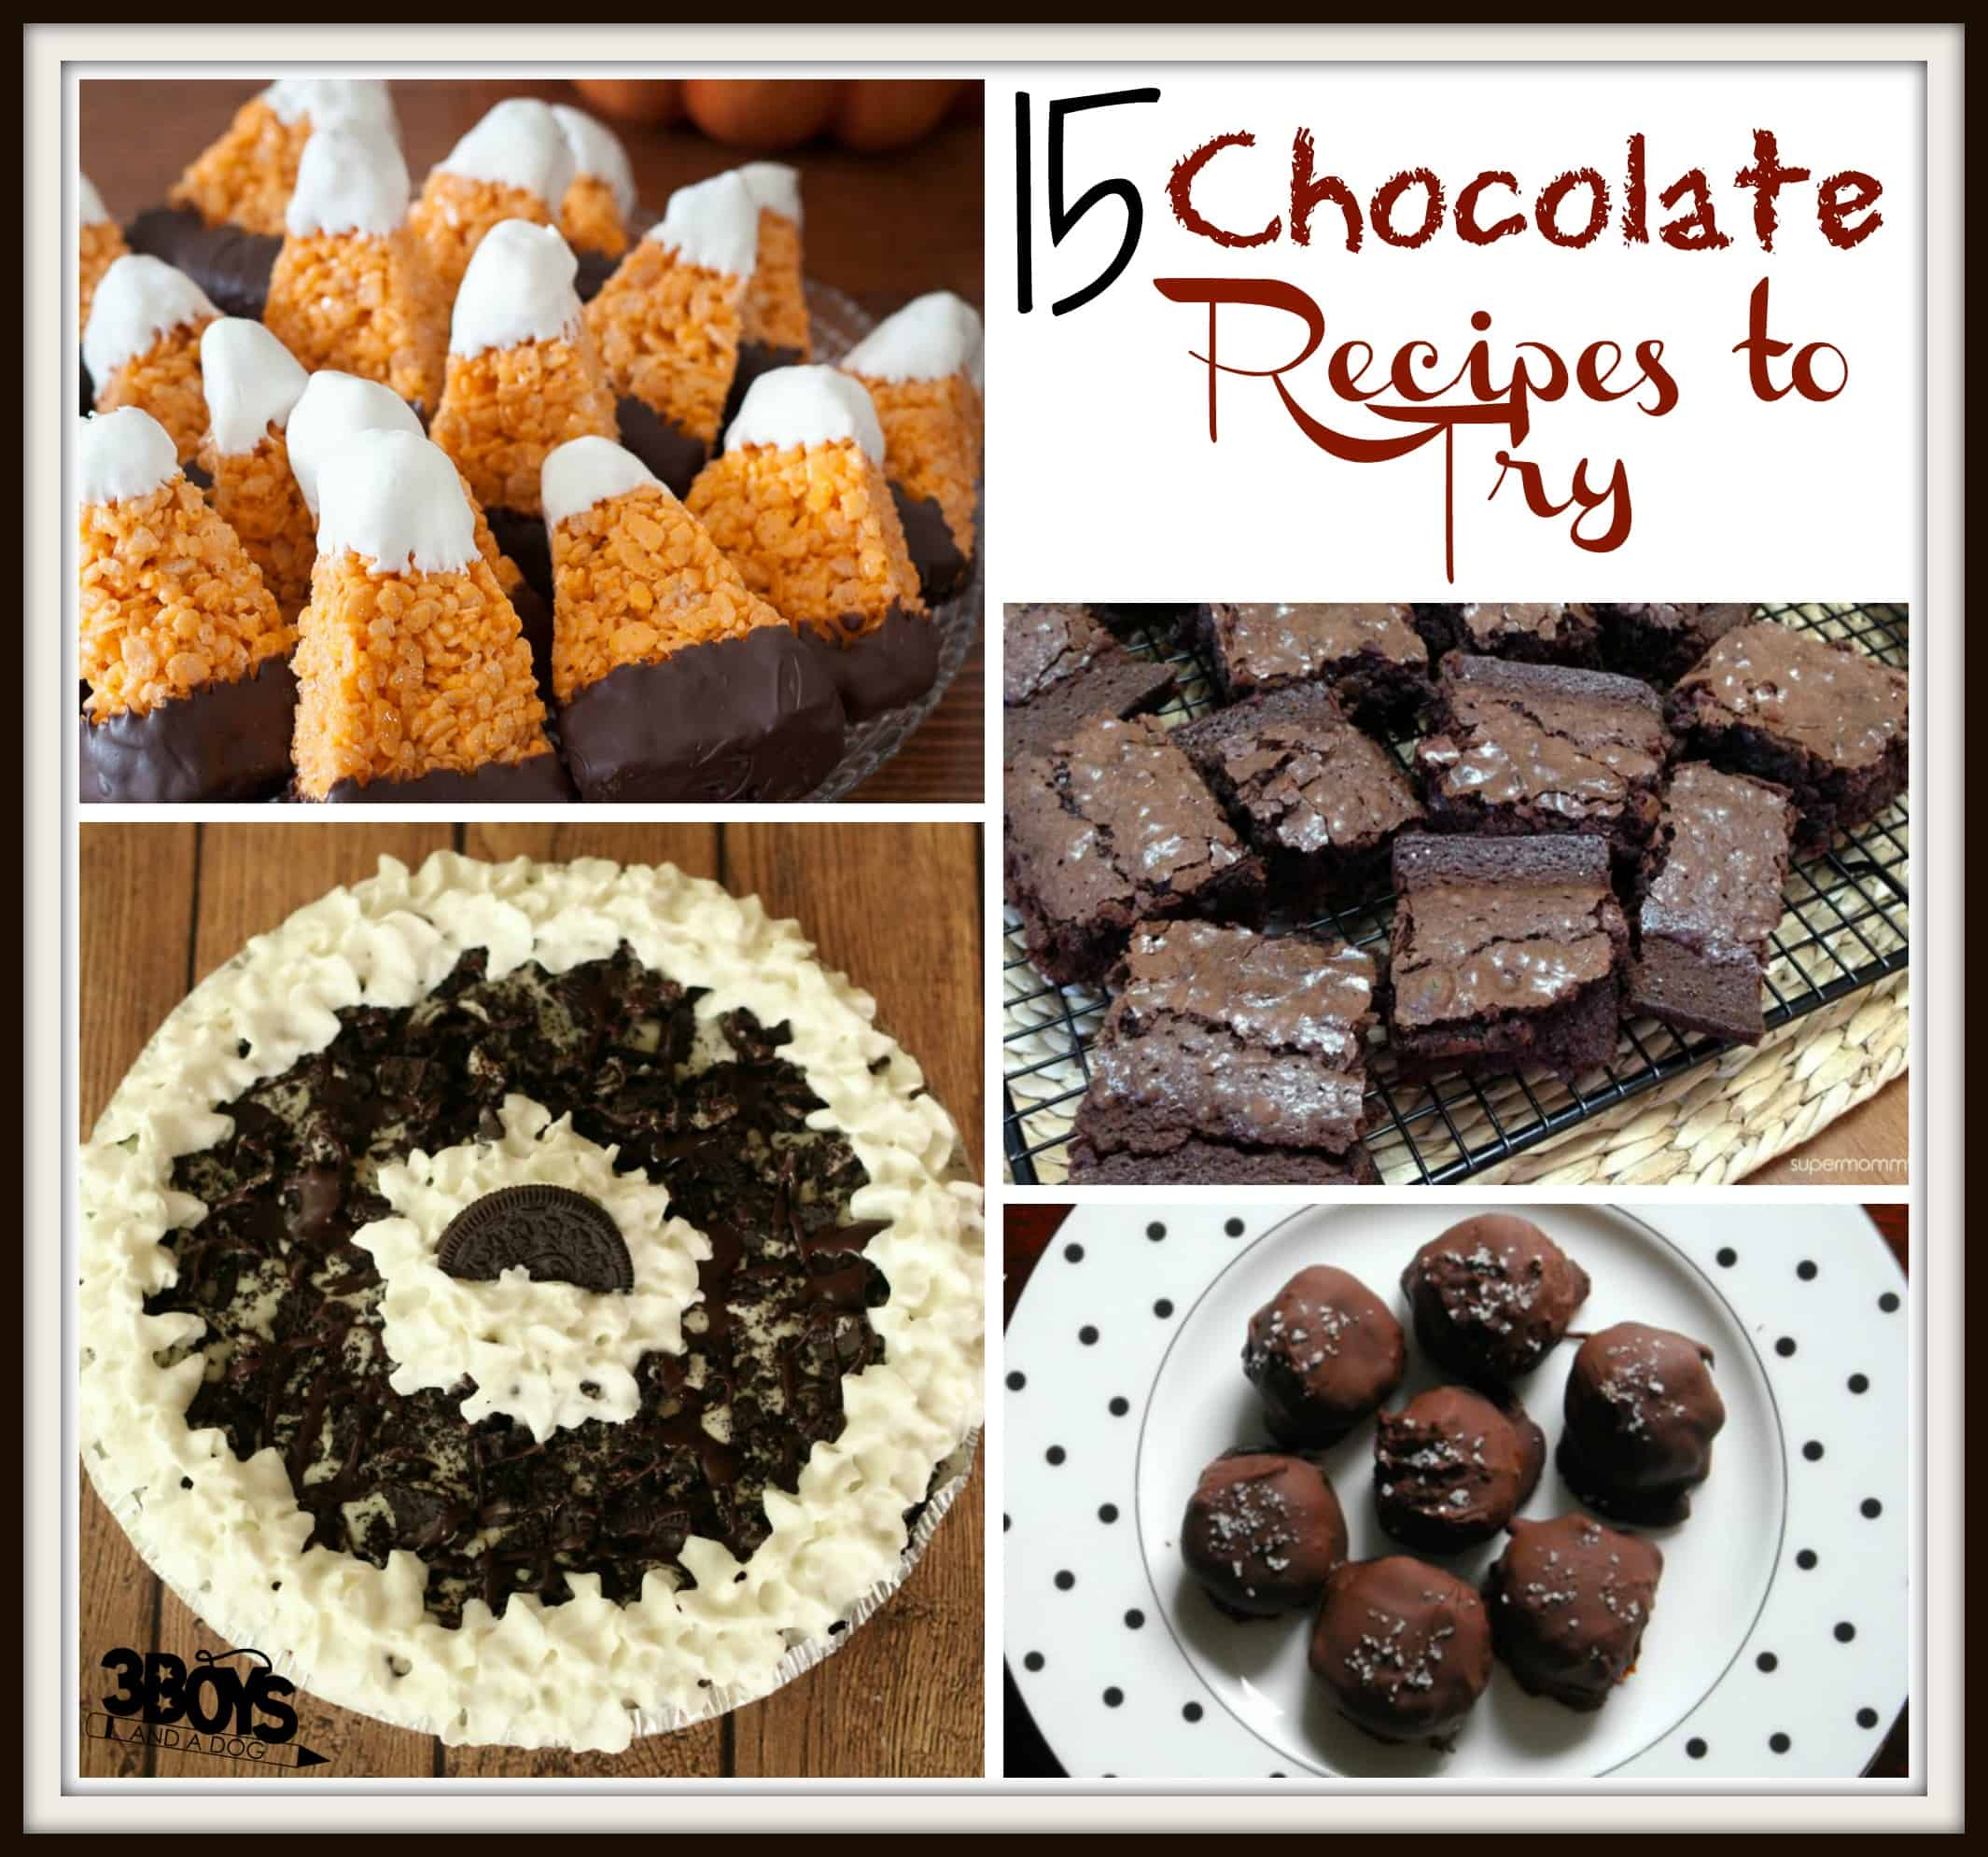 Over 15 Chocolate Recipes To Try